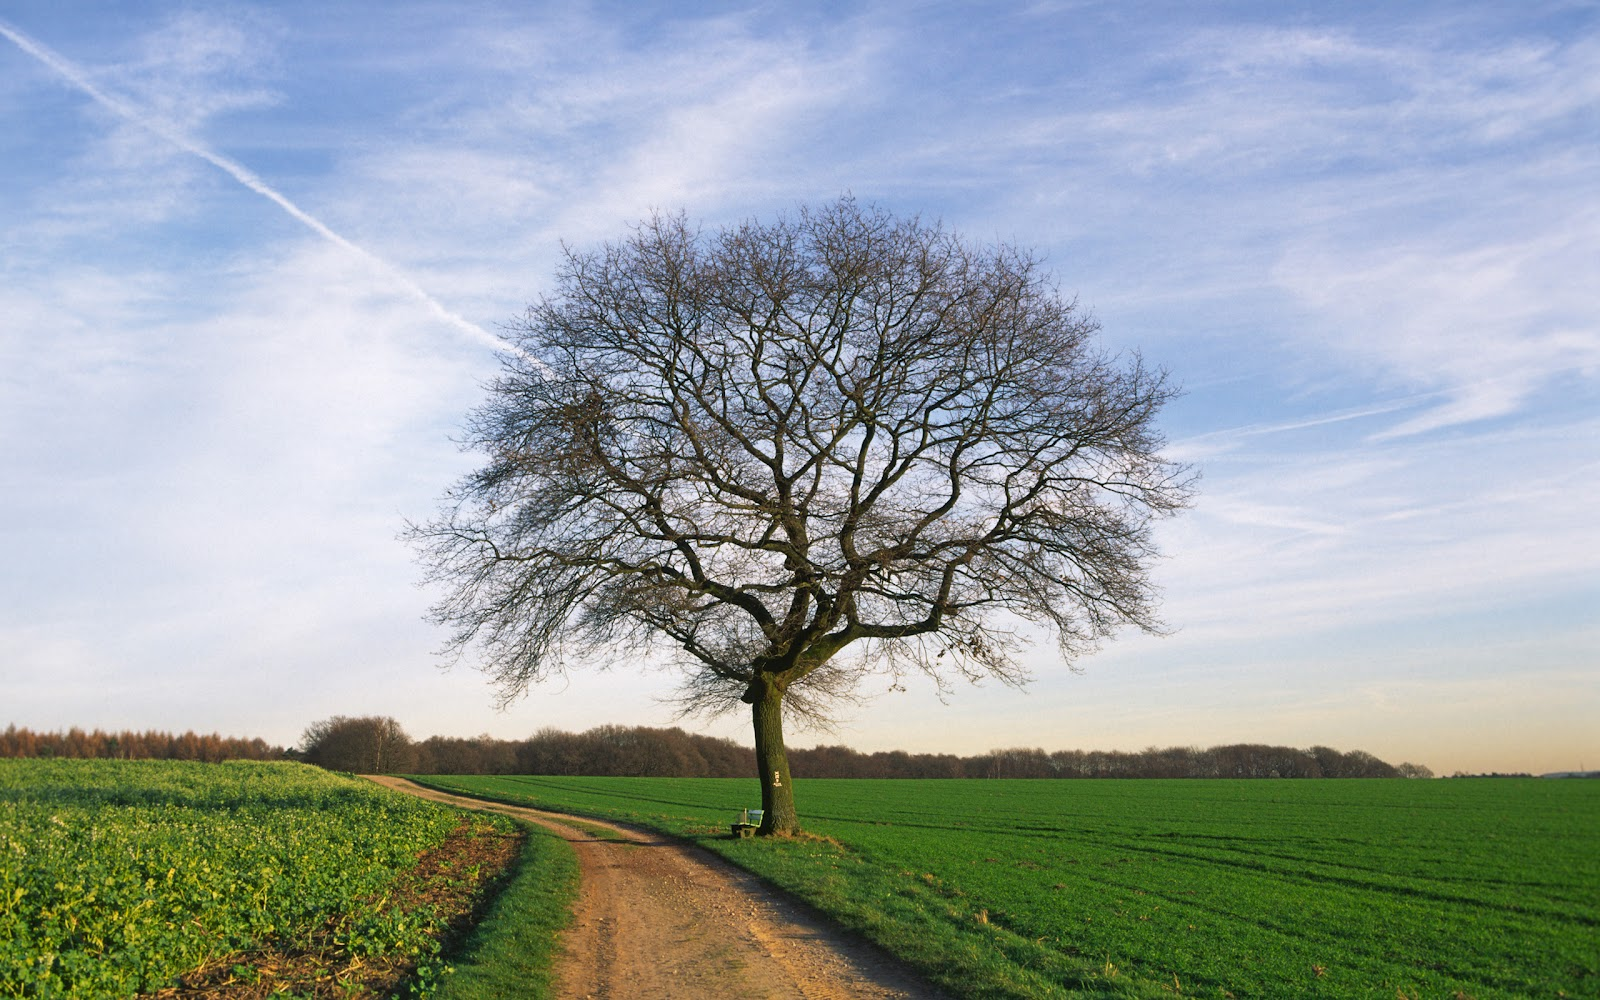 WnP: Wallpapers & Pictures: Widescreen Beautiful Trees ...